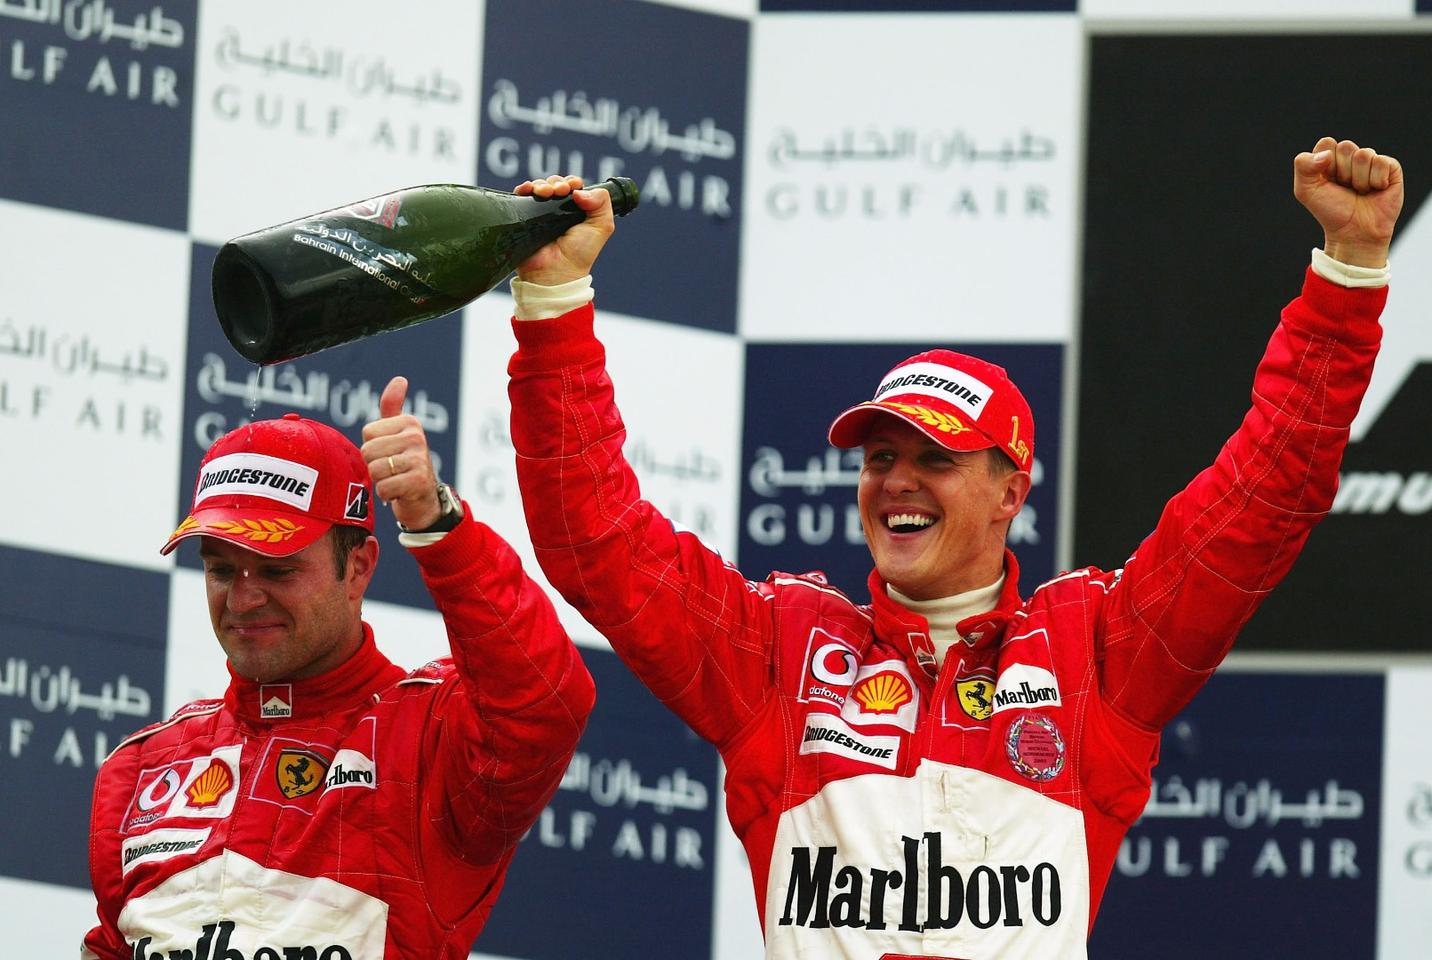 With seven world F1 championships, Michael Schumacher is the most successful F1 racing driver in history.